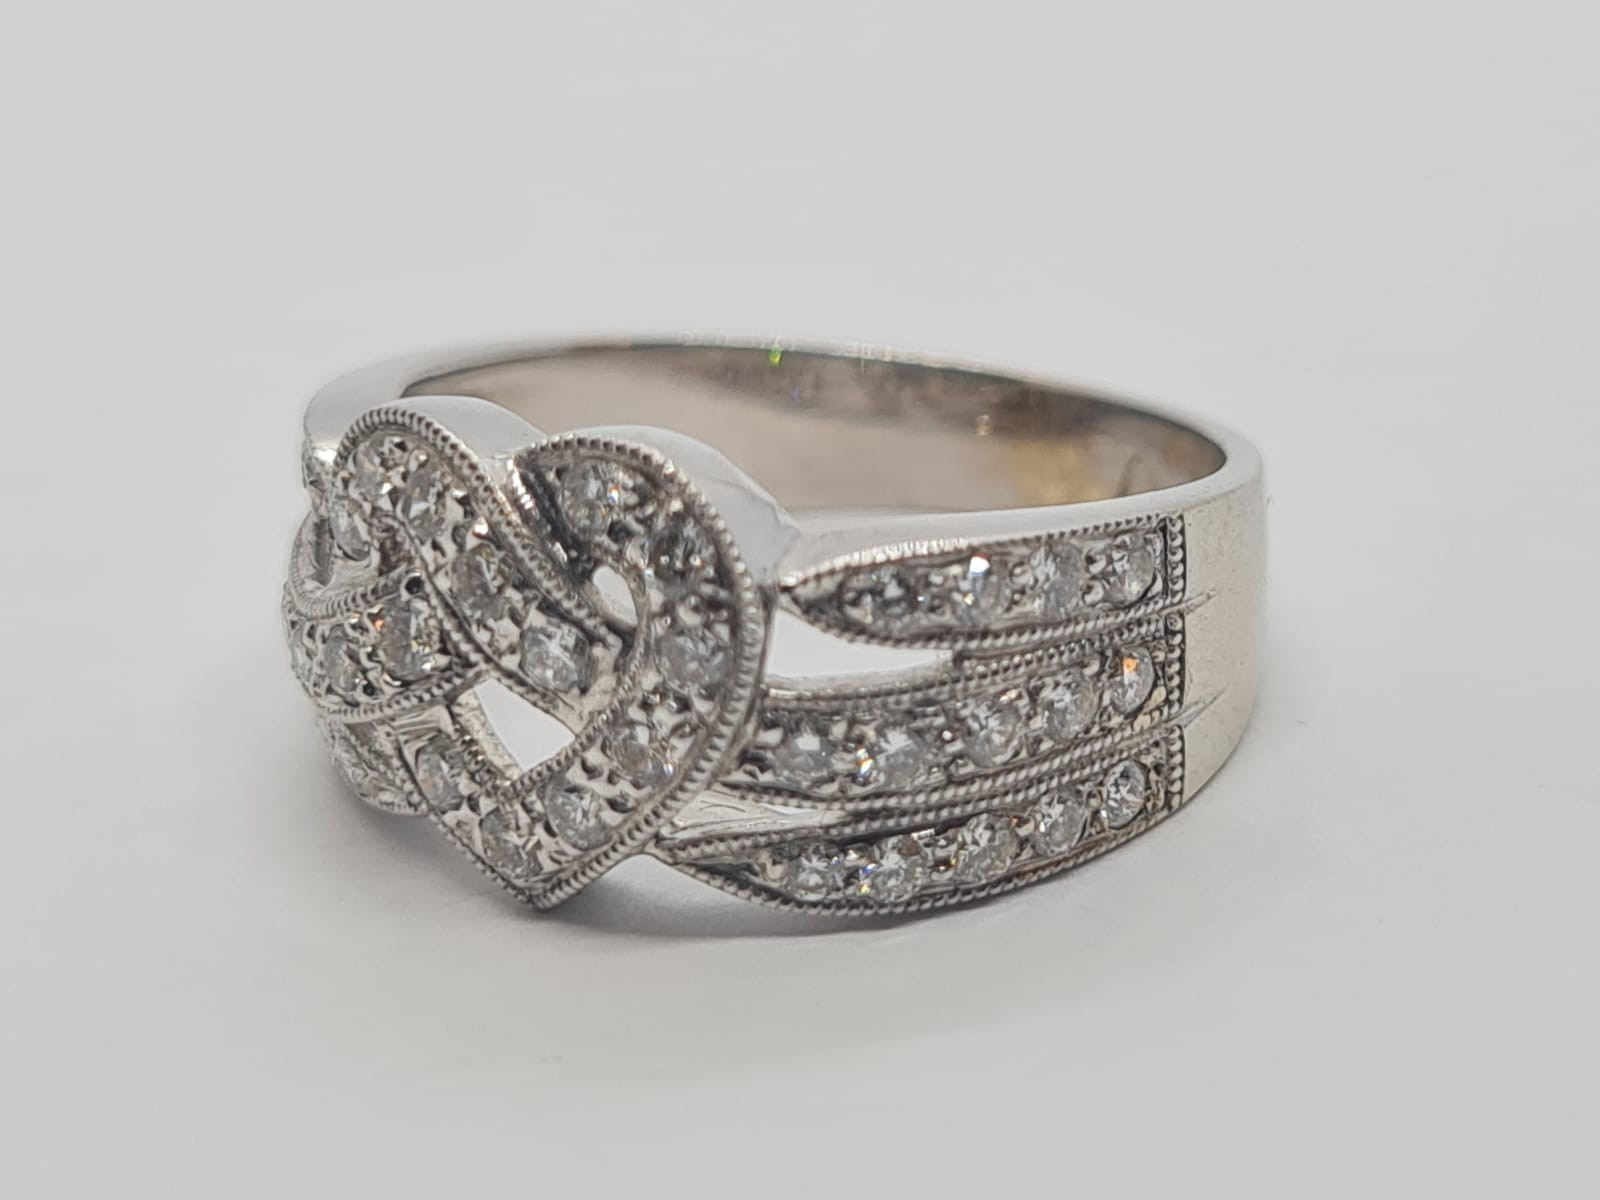 18k white gold heart design diamond ring, weight 4.4g and size L and approx 1ct diamonds - Image 3 of 4